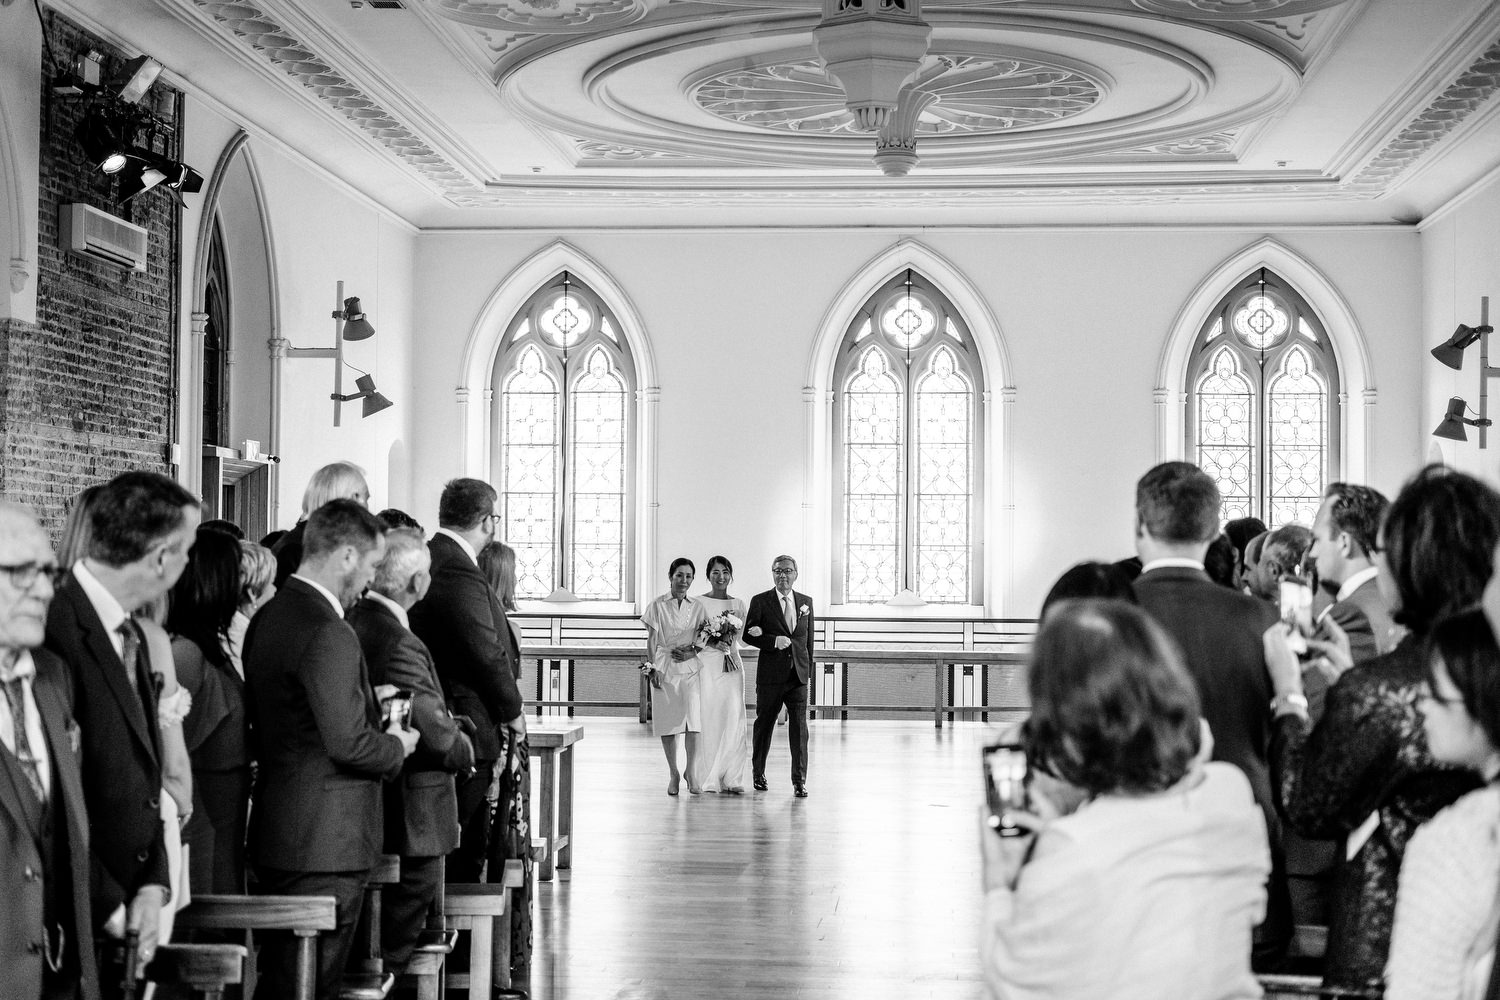 dmp0205_dublin_alley_photography_david_mcclelland_ceremony_humanist_documentary_theatre_smock_wedding_photographer